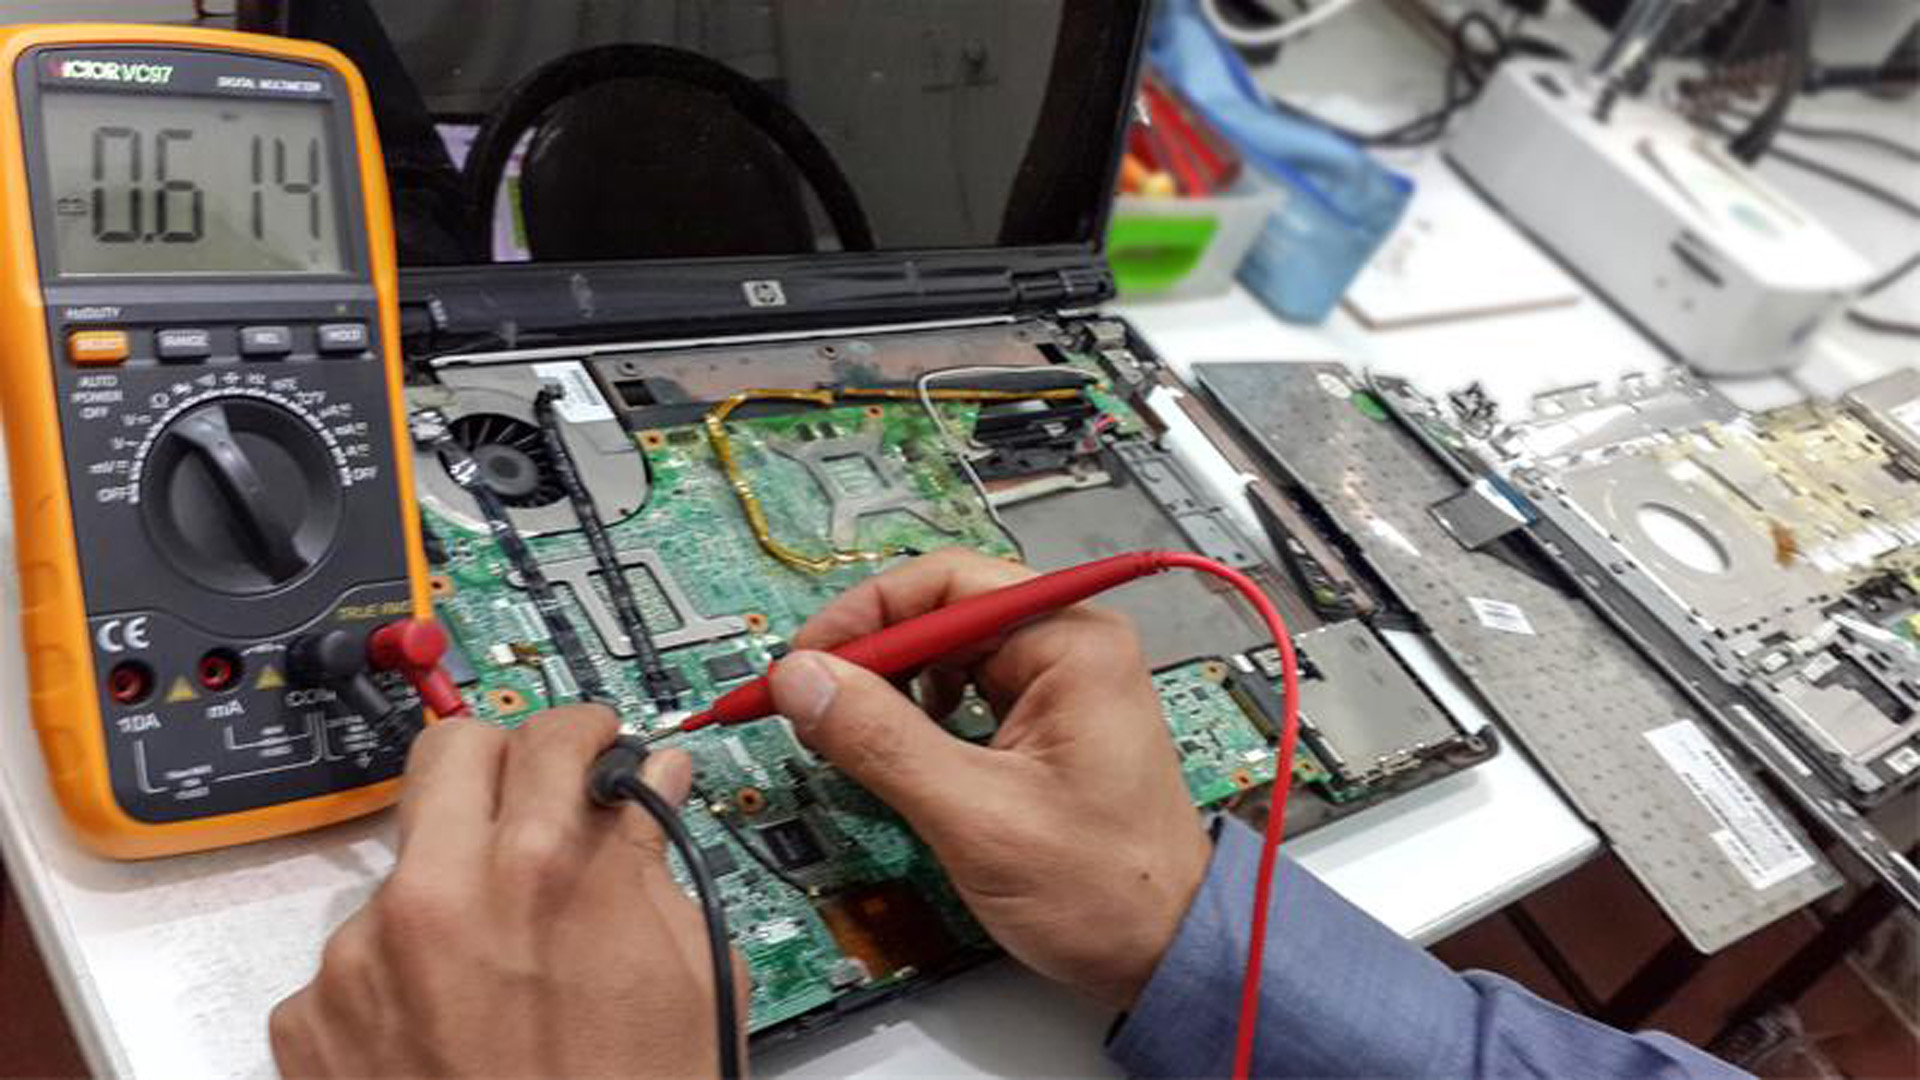 Svtek Industires Industrial Repair Services Electronic Wiring Svteks Technicians Have A Wide Range Of Electronics Expertise Their Experience And Dedication To Quality Ensure Long Up Time With Minimum